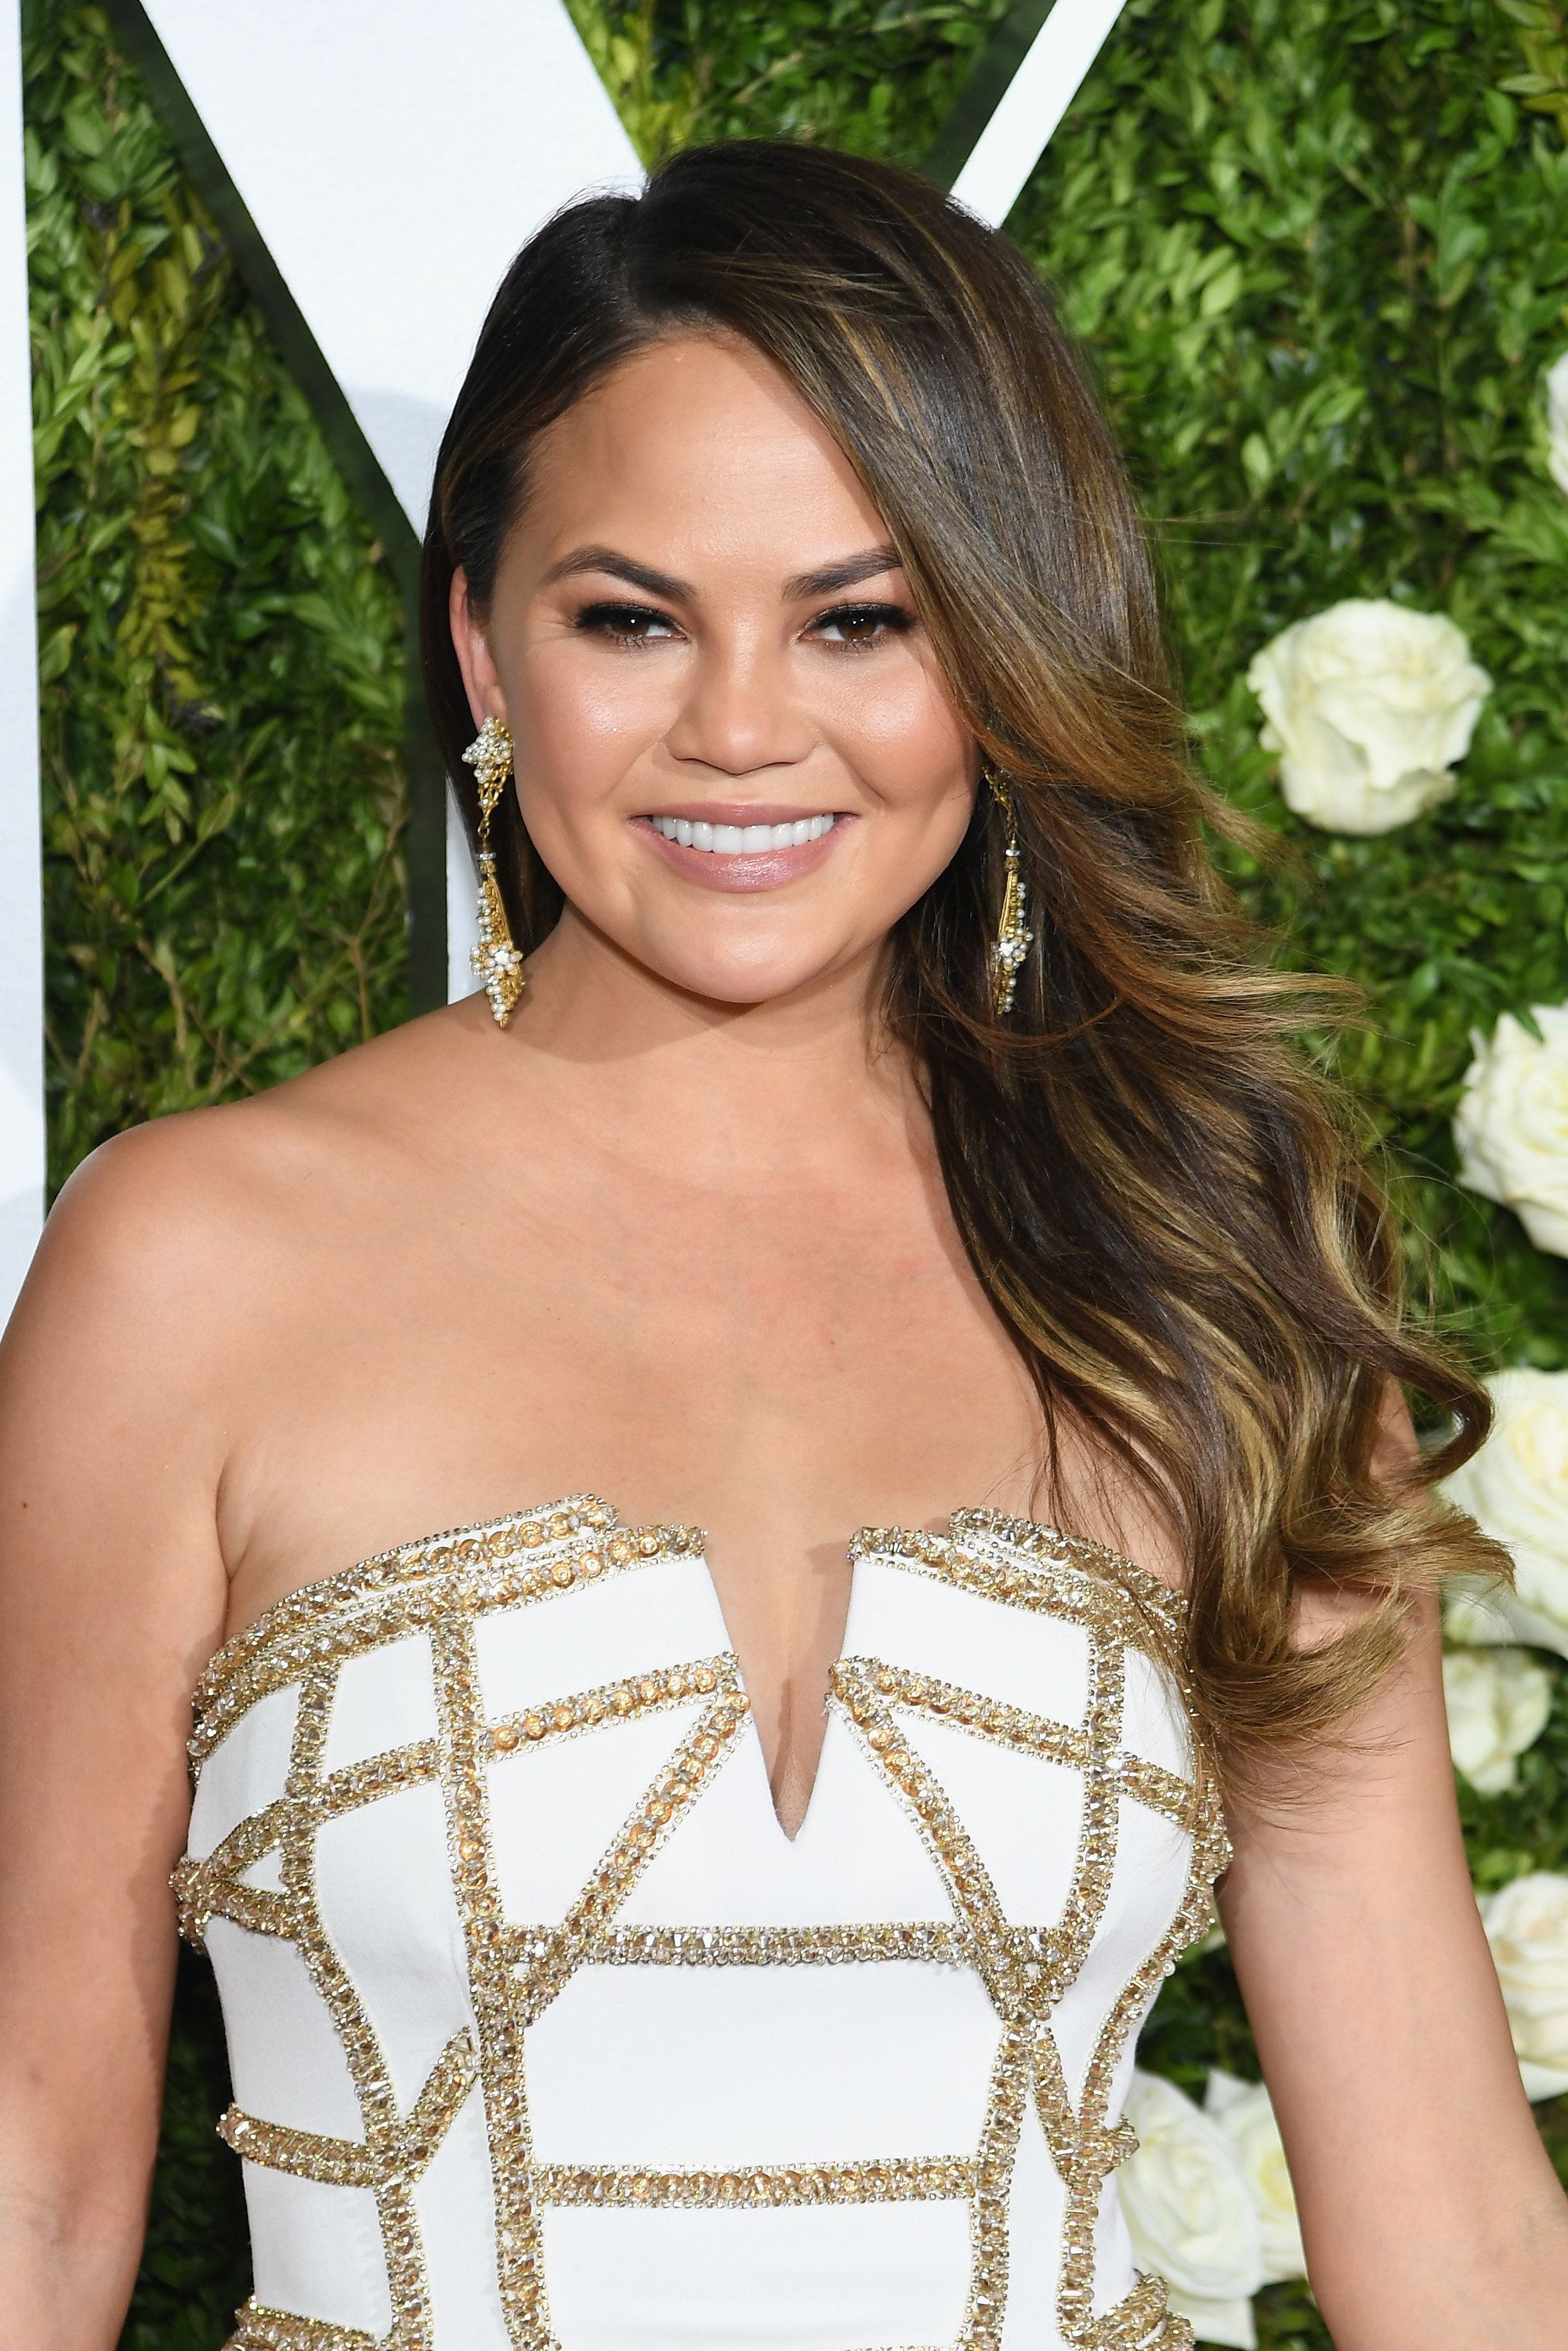 NEW YORK, NY - JUNE 11:  Chrissy Teigen attends the 2017 Tony Awards at Radio City Music Hall on June 11, 2017 in New York City.  (Photo by Dimitrios Kambouris/Getty Images for Tony Awards Productions)